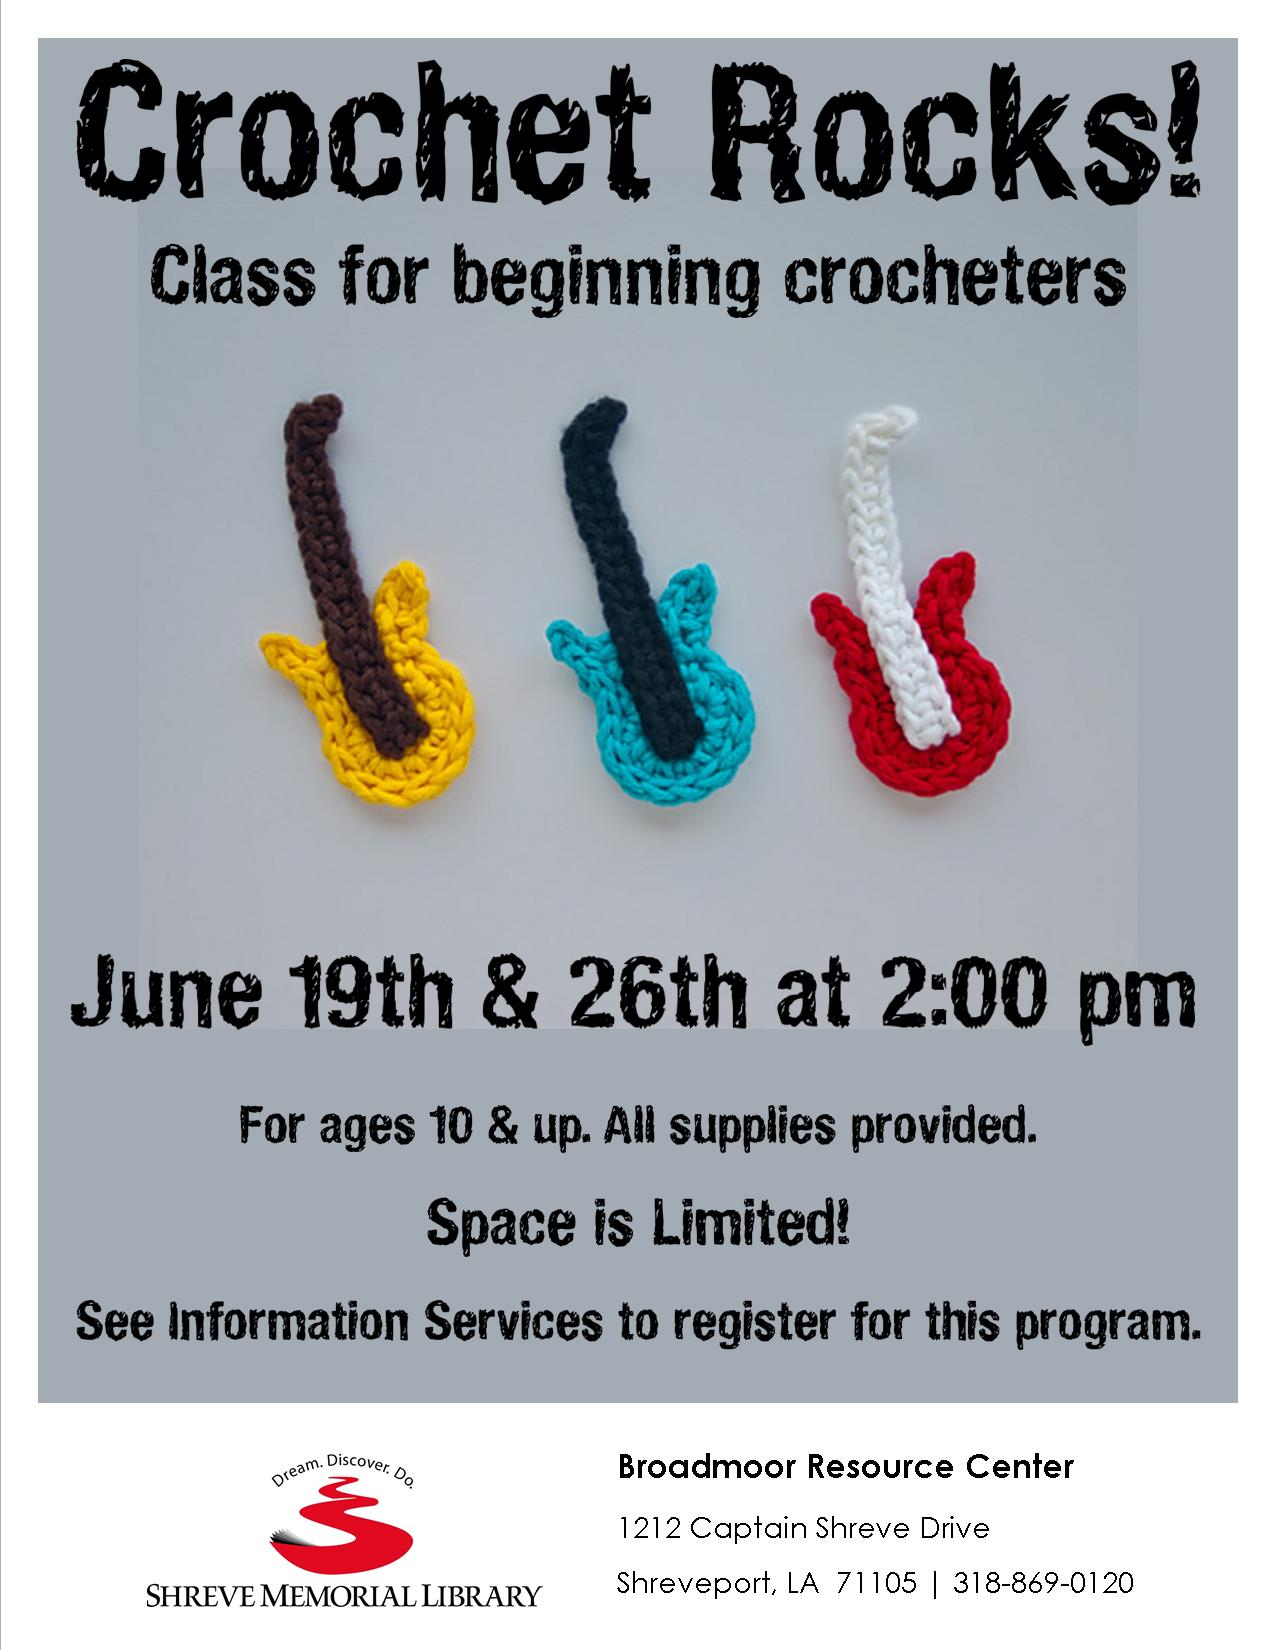 06-19--flyer_Crochet Rocks!